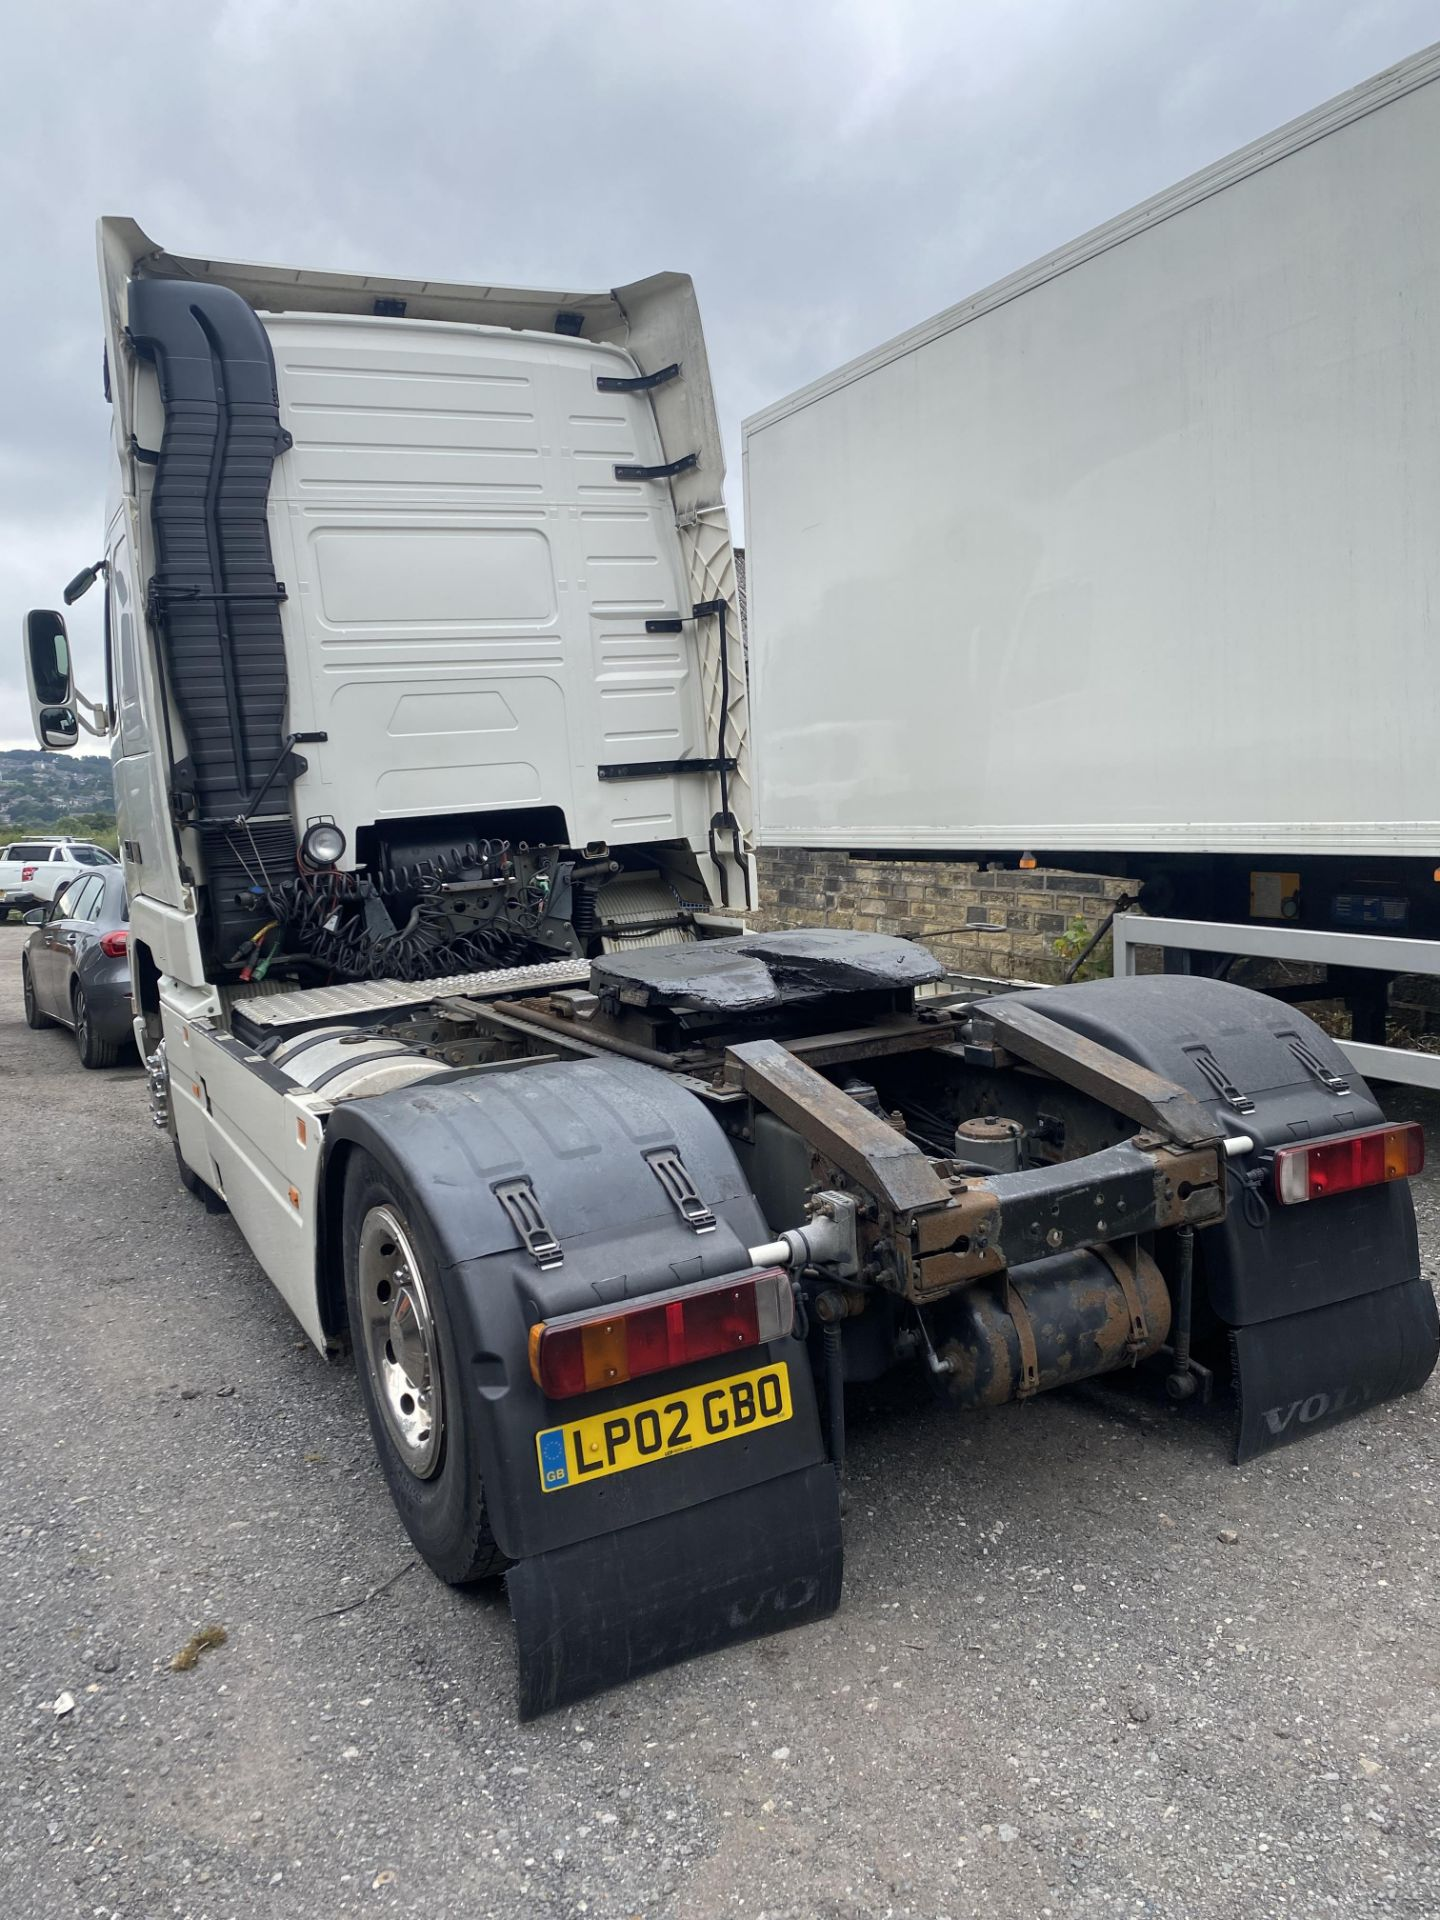 Volvo FH12.420 GTXL V1 4X2 TRACTOR UNIT, registration no. LP02 GBO, date first registered 01/03/ - Image 2 of 17